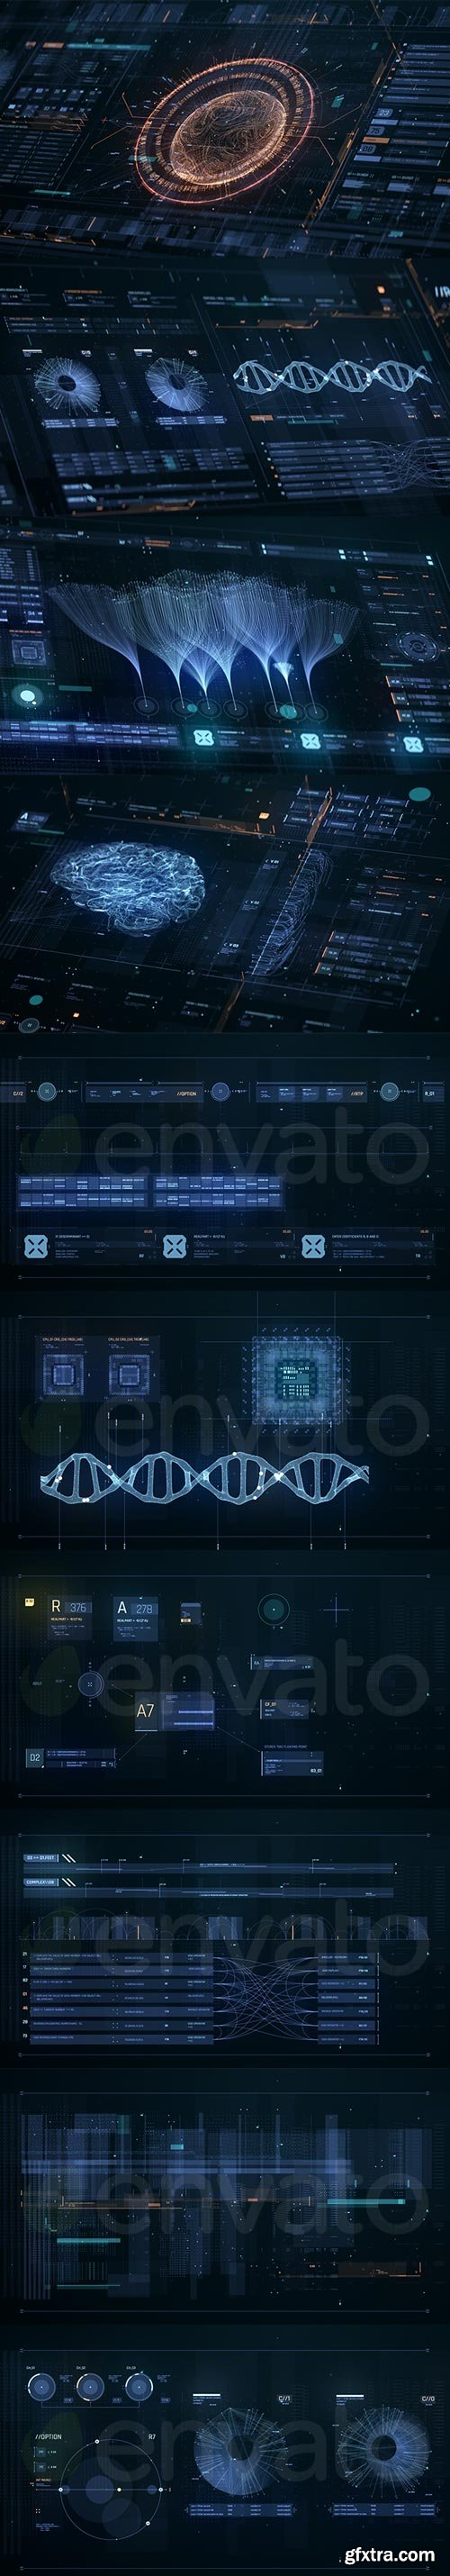 Videohive - Ultimate FUI HUD Library - 25744407